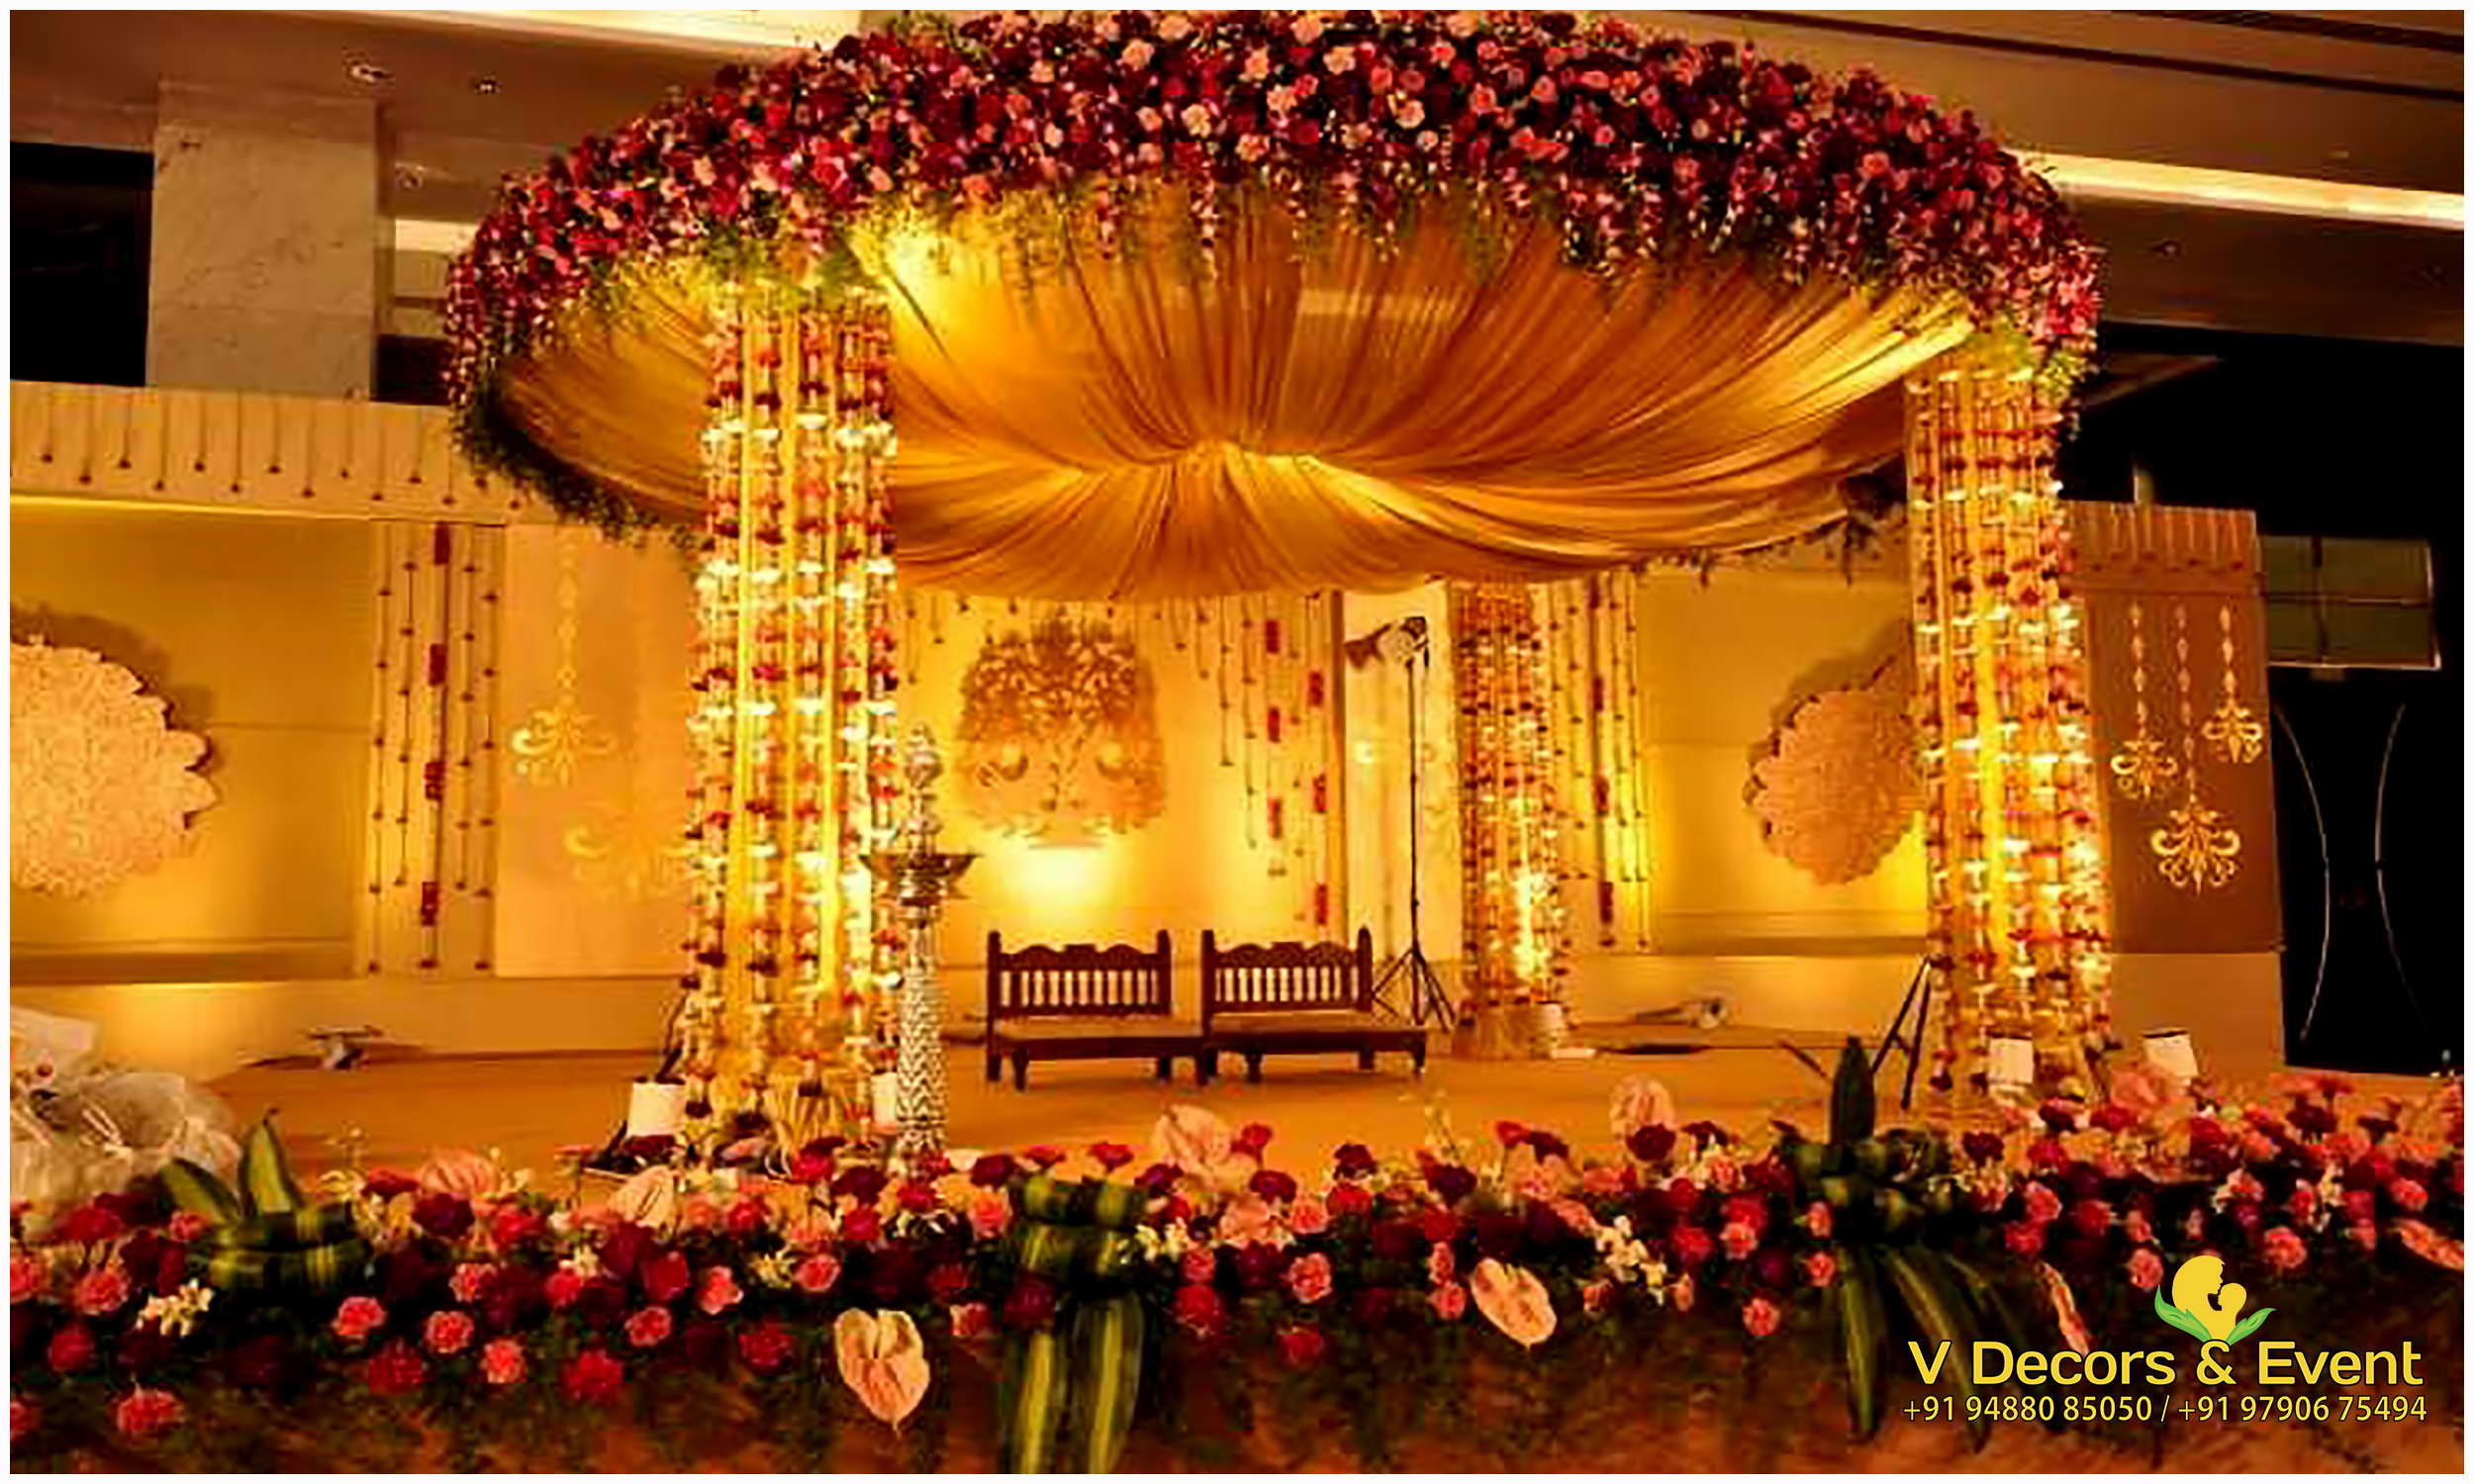 design light columns bridal decoration gallery furniture and wedding stage luxury decor candlelight rentals decorations candle draping flowers centerpieces ivory